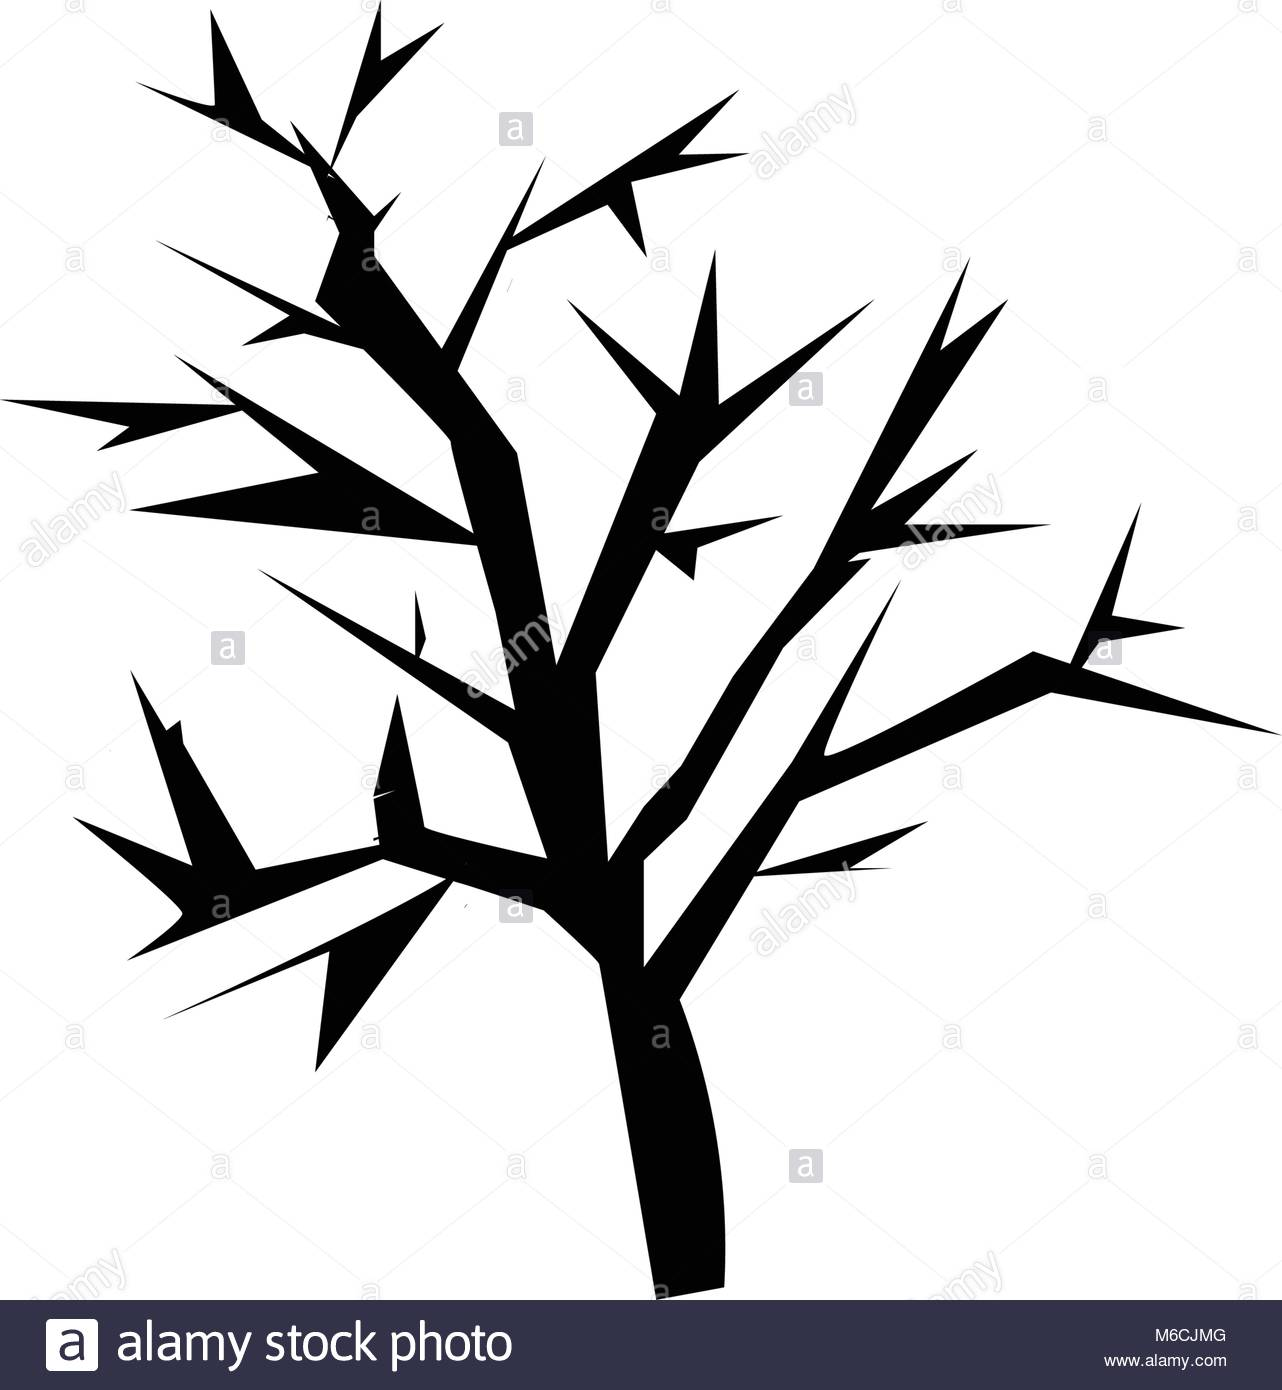 1282x1390 Mesquite Tree Silhouette On White Background Stock Vector Art